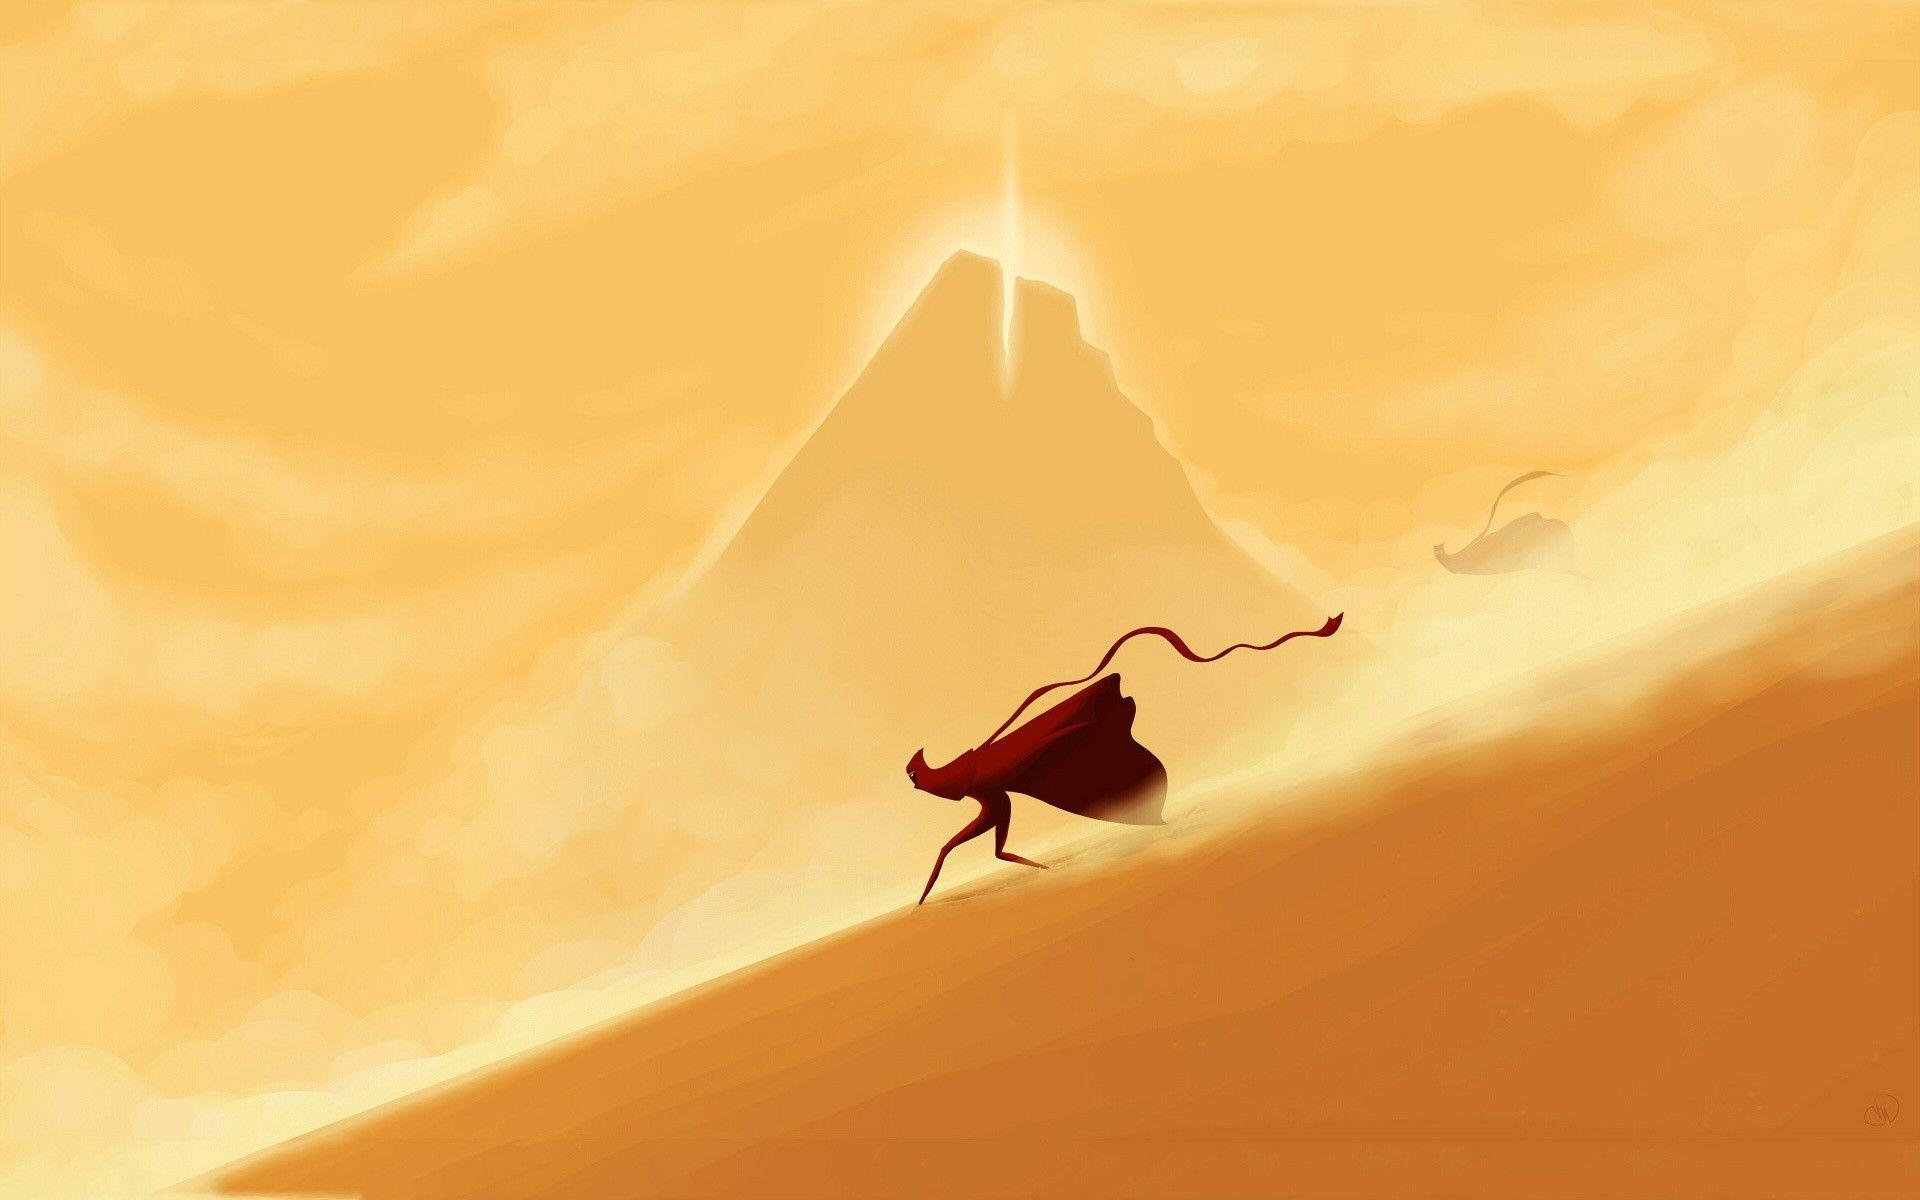 Journey wallpapers ·① Download free cool backgrounds for desktop and